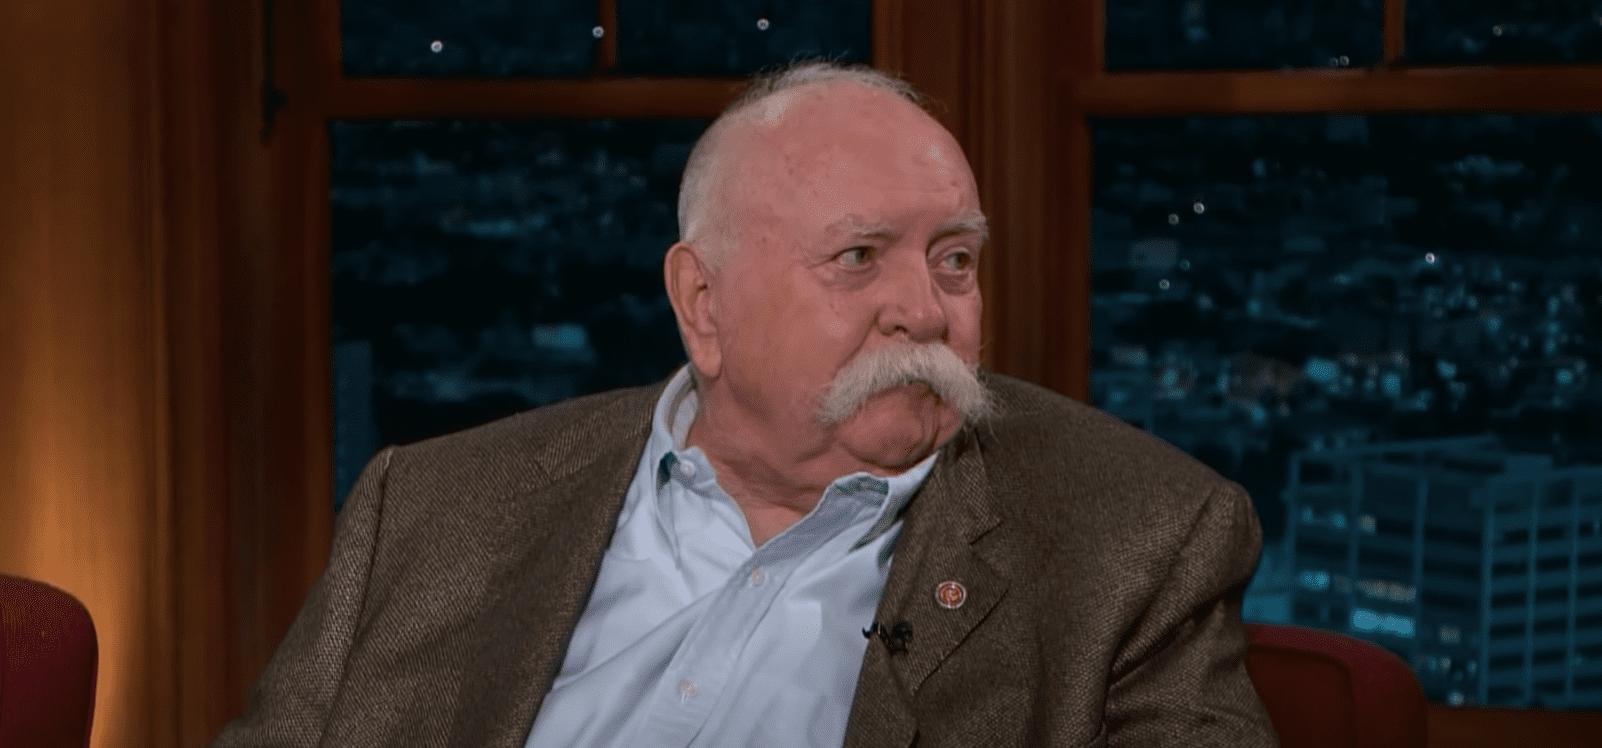 Image Source: Youtube/Fergufool| Craig Ferguson With Wilford Brimley